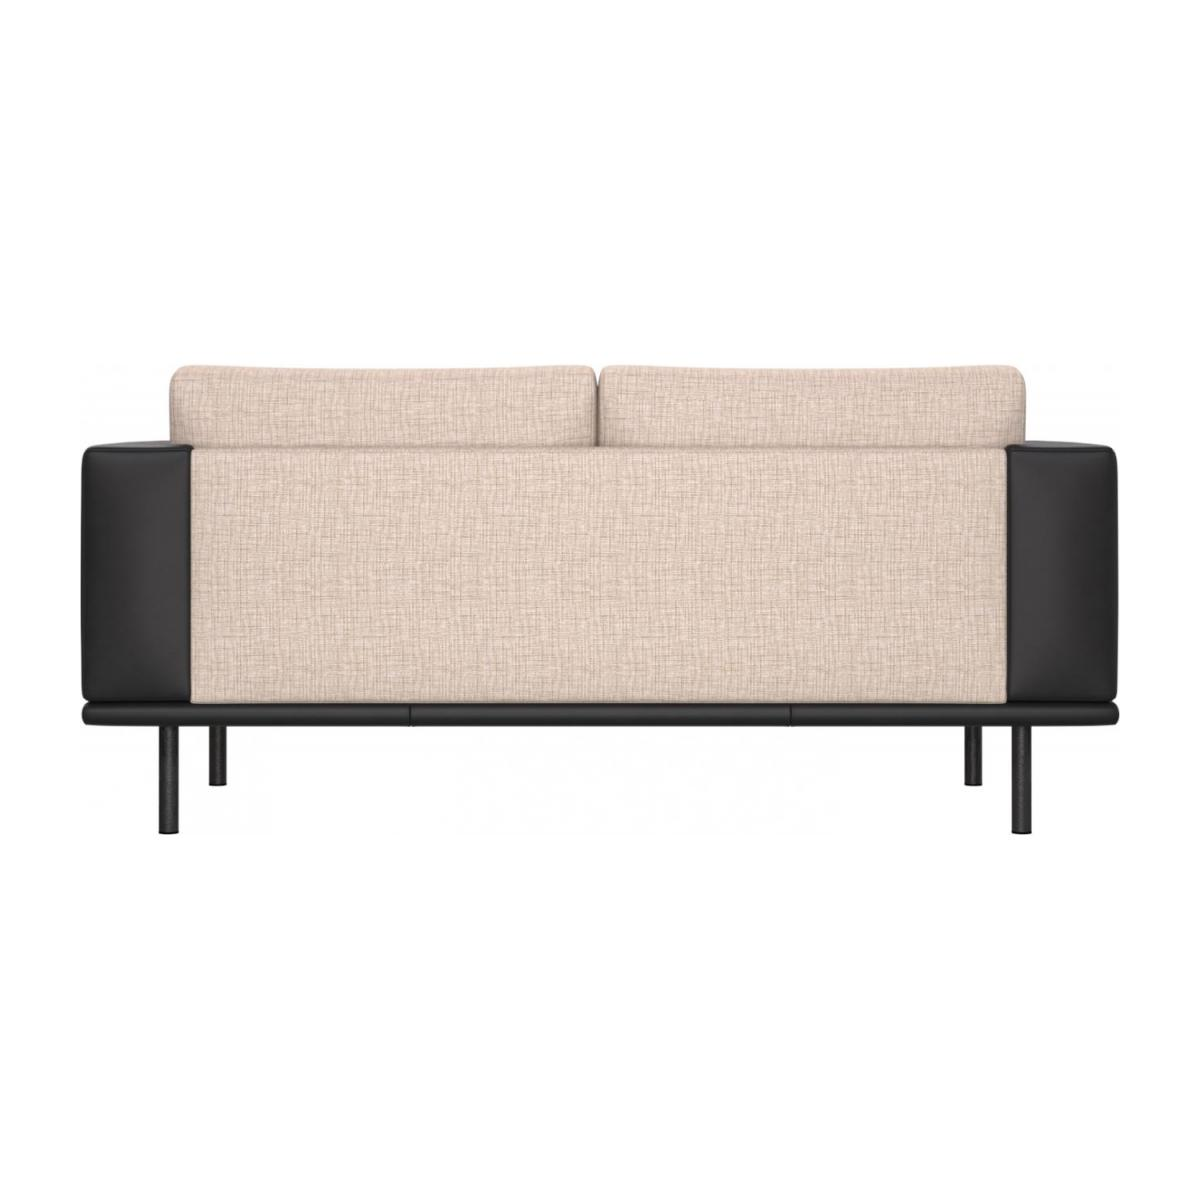 2 seater sofa in Ancio fabric, nature with base and armrests in black leather n°3